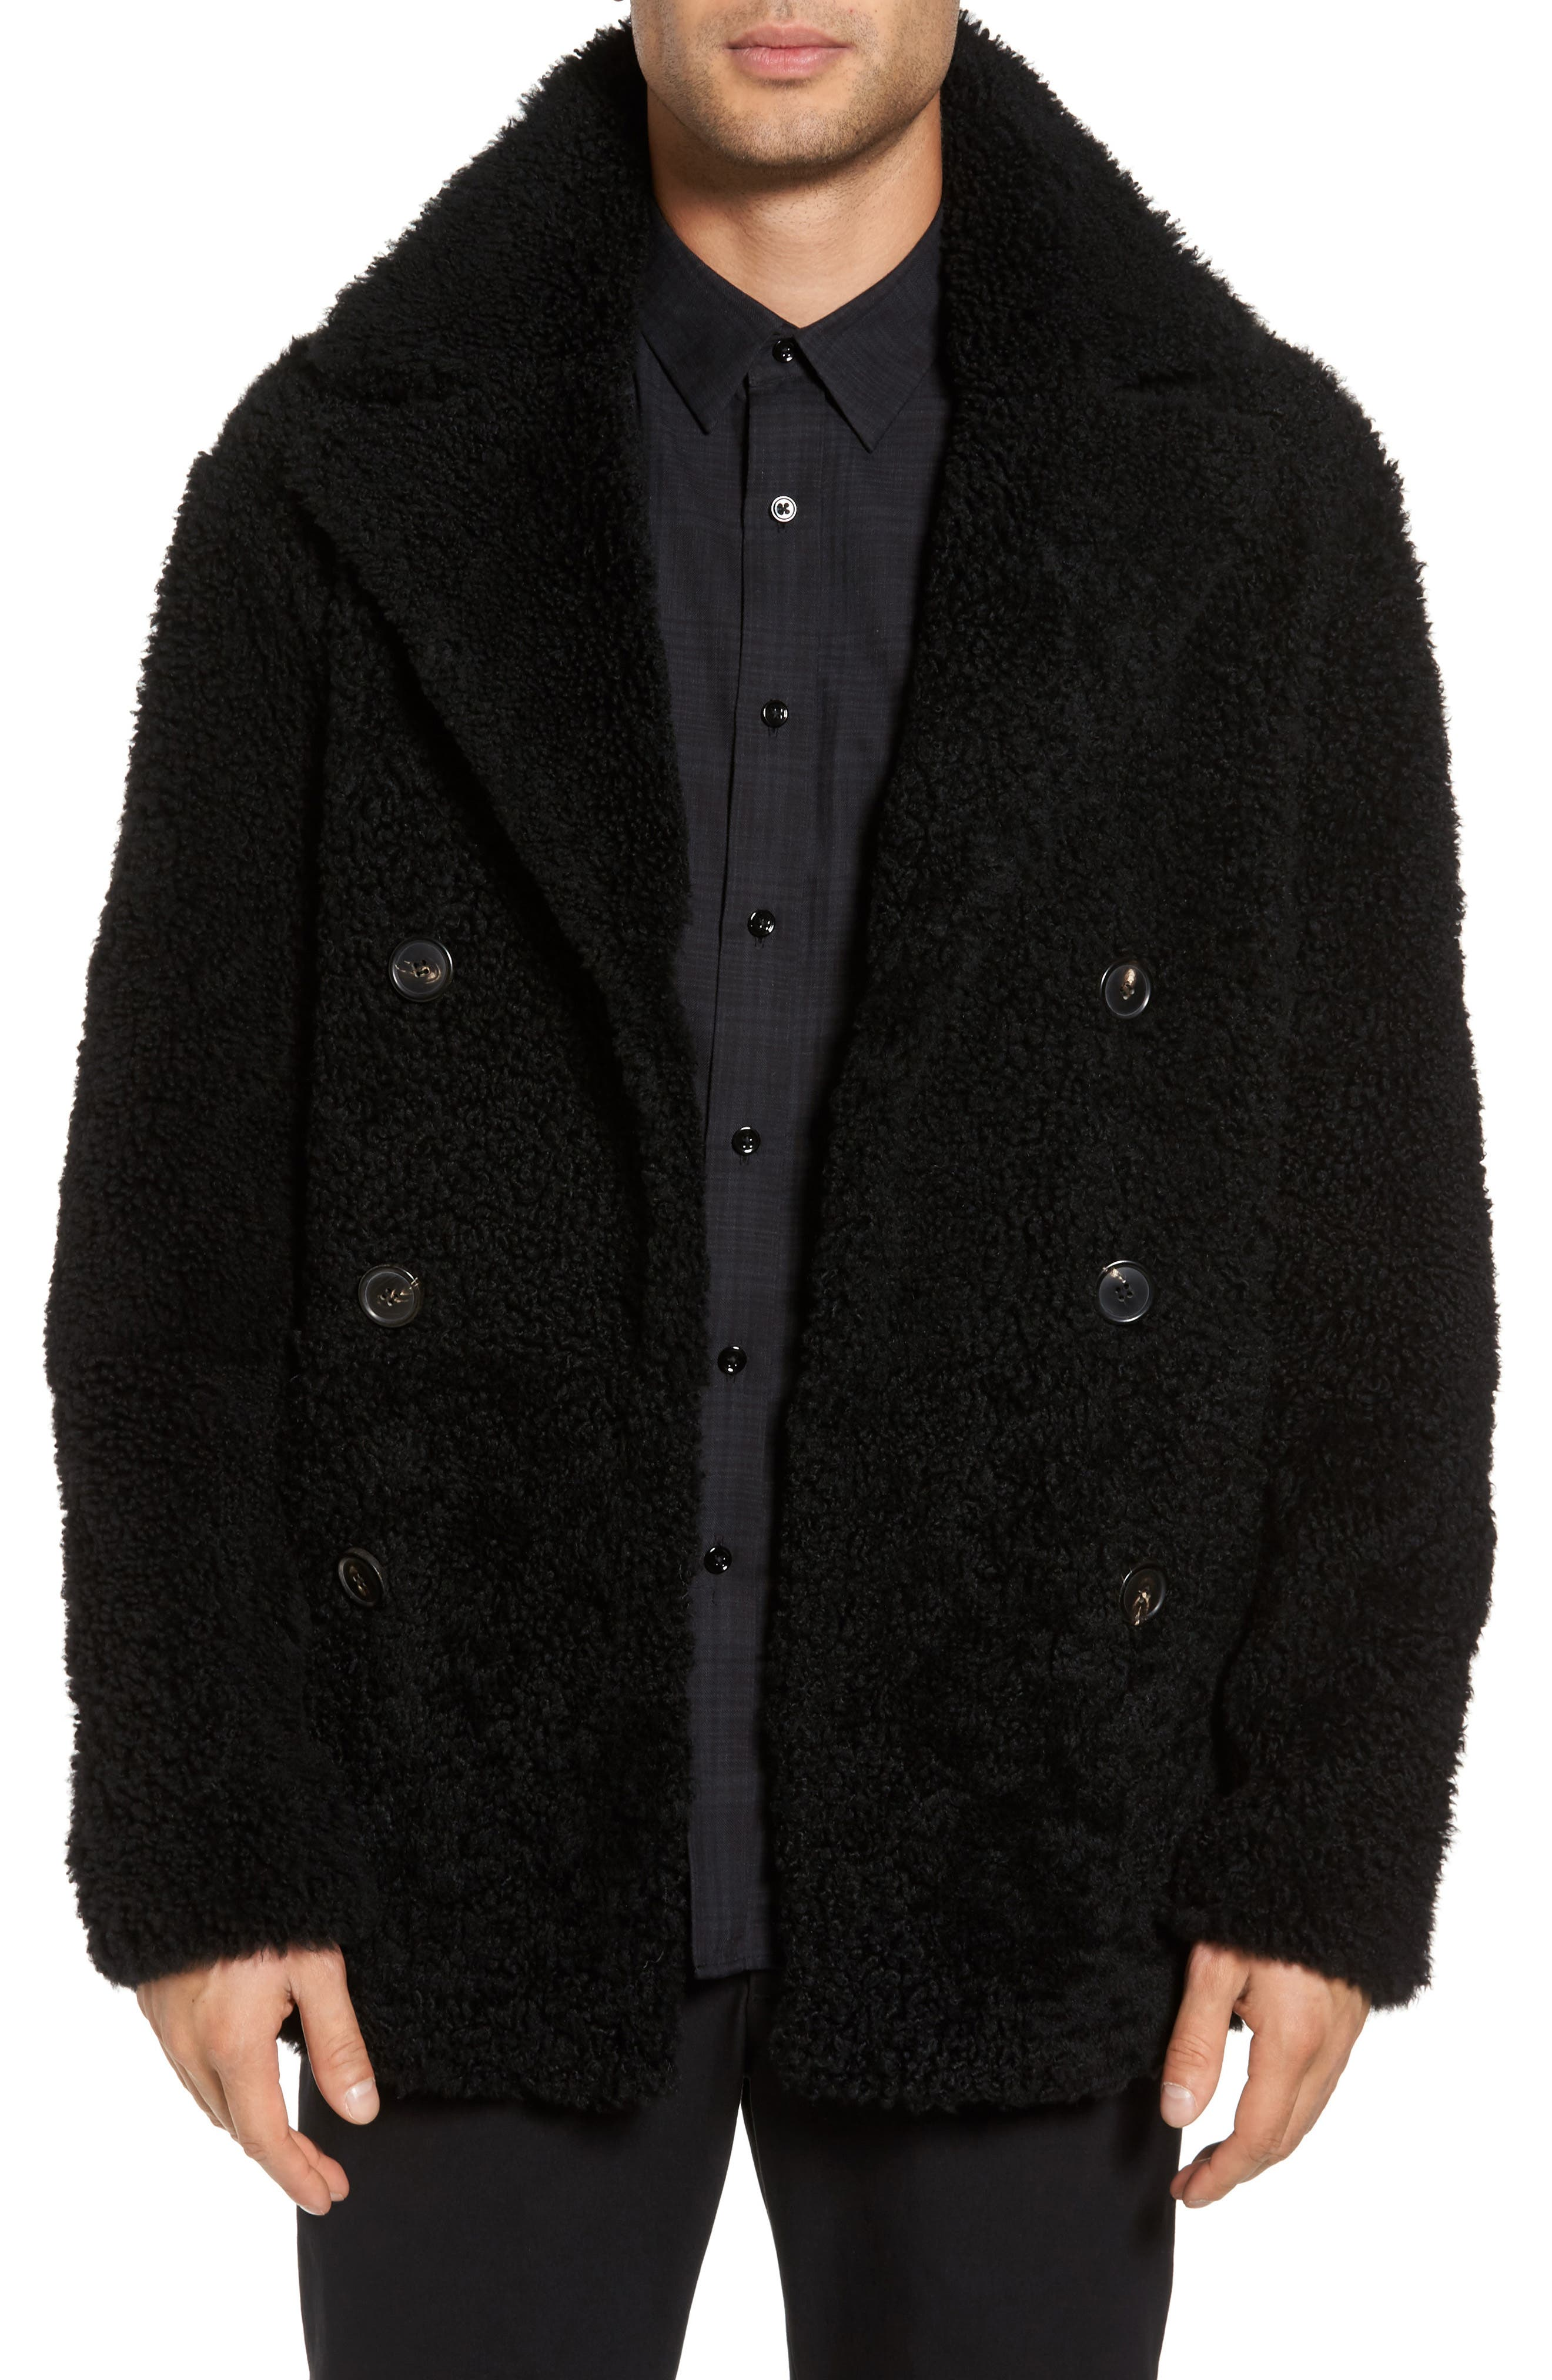 Alternate Image 1 Selected - Theory Reversible Genuine Shearling Peacoat